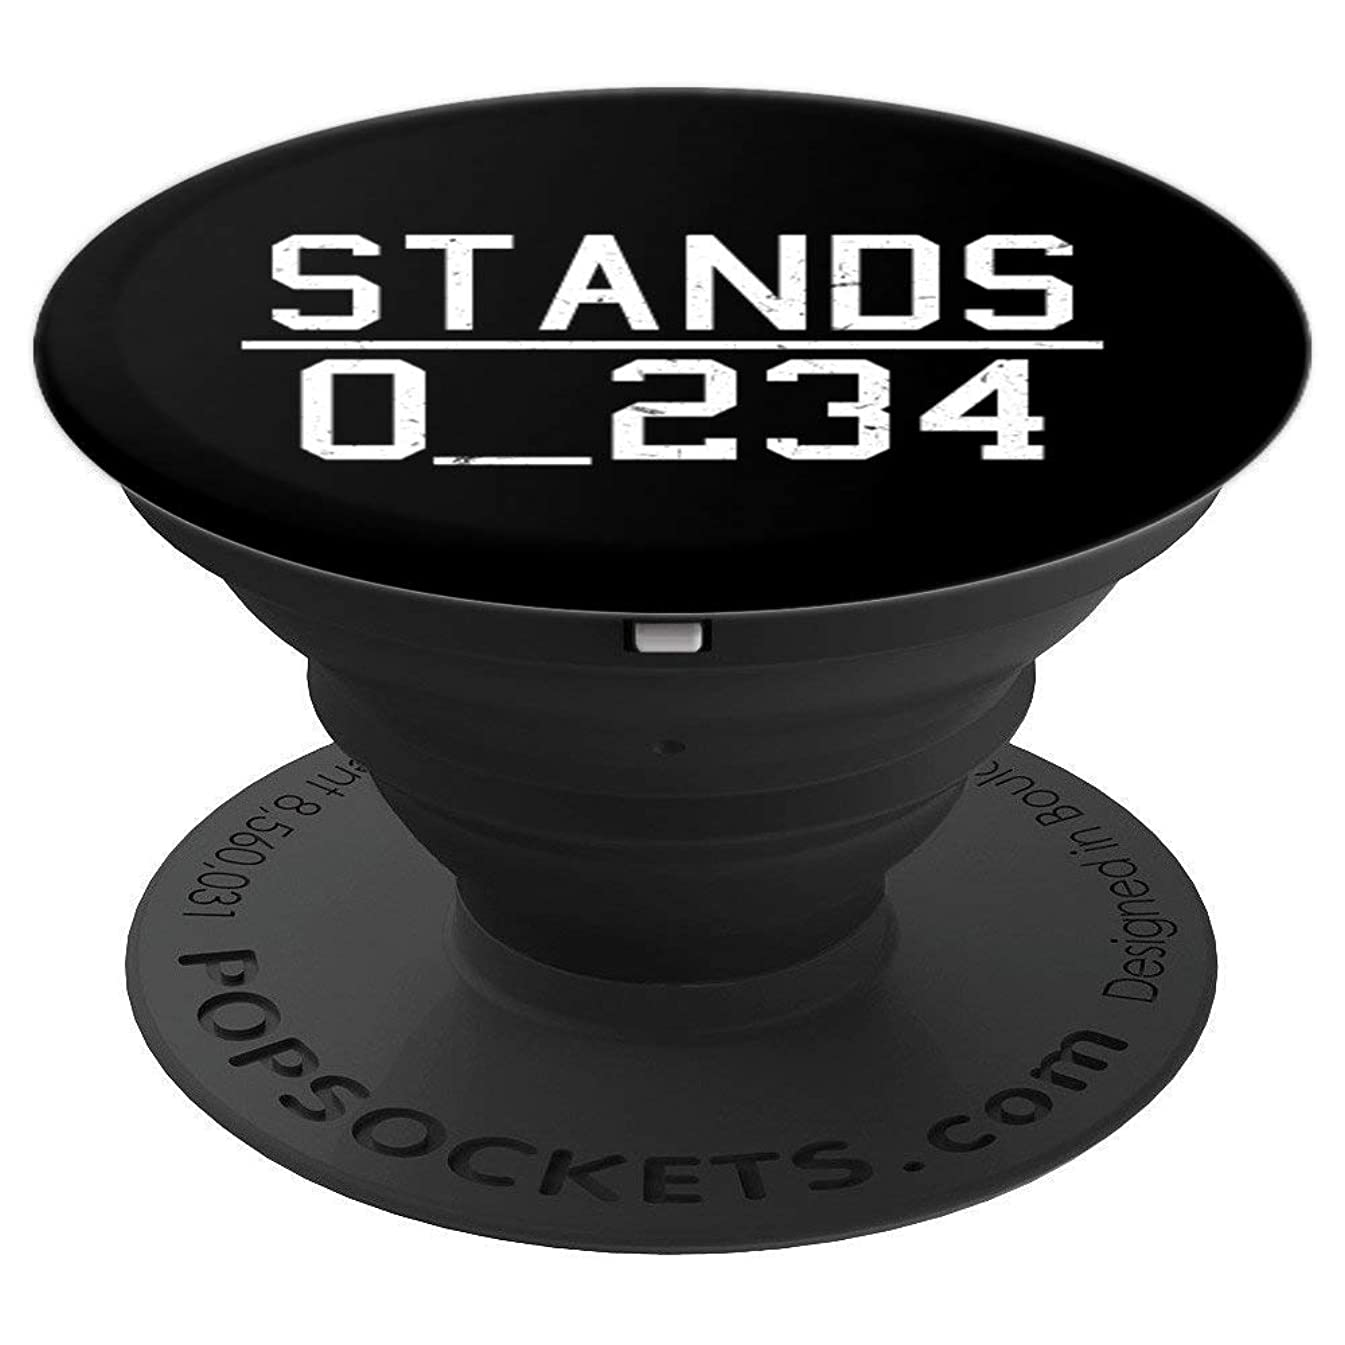 No 1 Under Stands Riddle   Funny Word Puzzle Gift - PopSockets Grip and Stand for Phones and Tablets